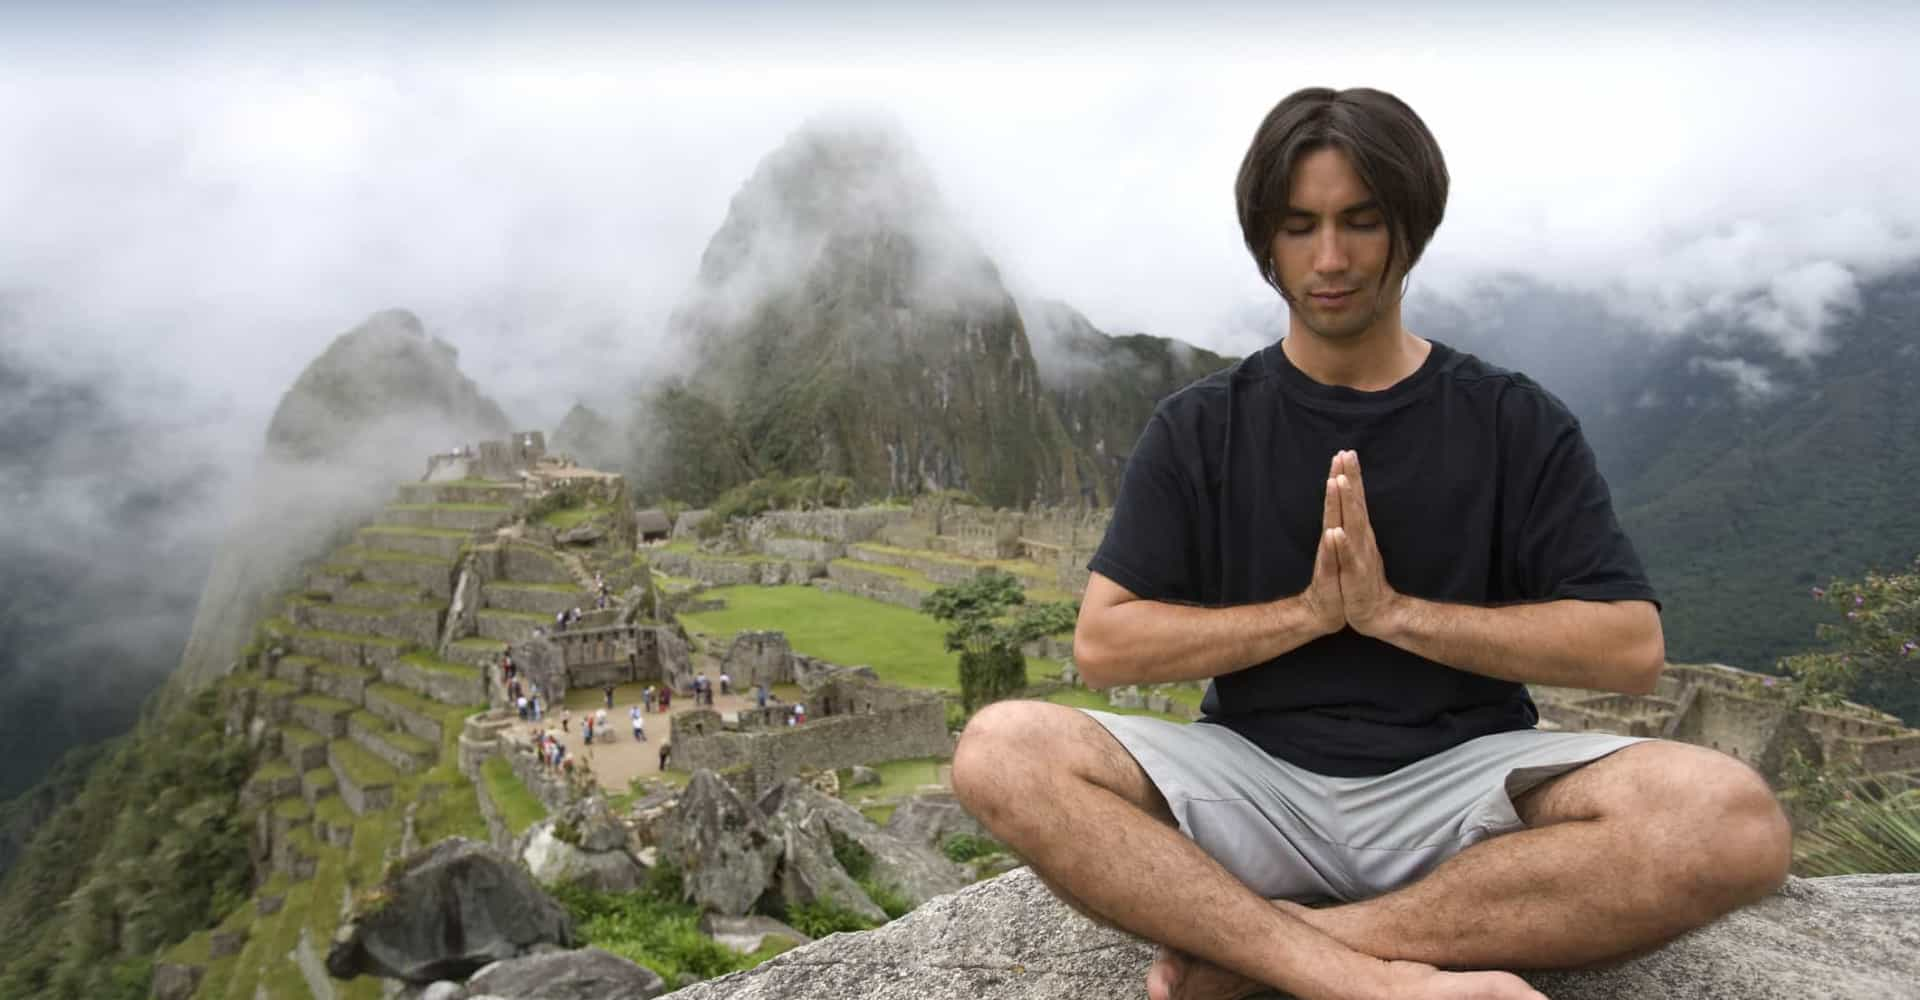 Spiritual and healing destinations for a heightened sense of well-being